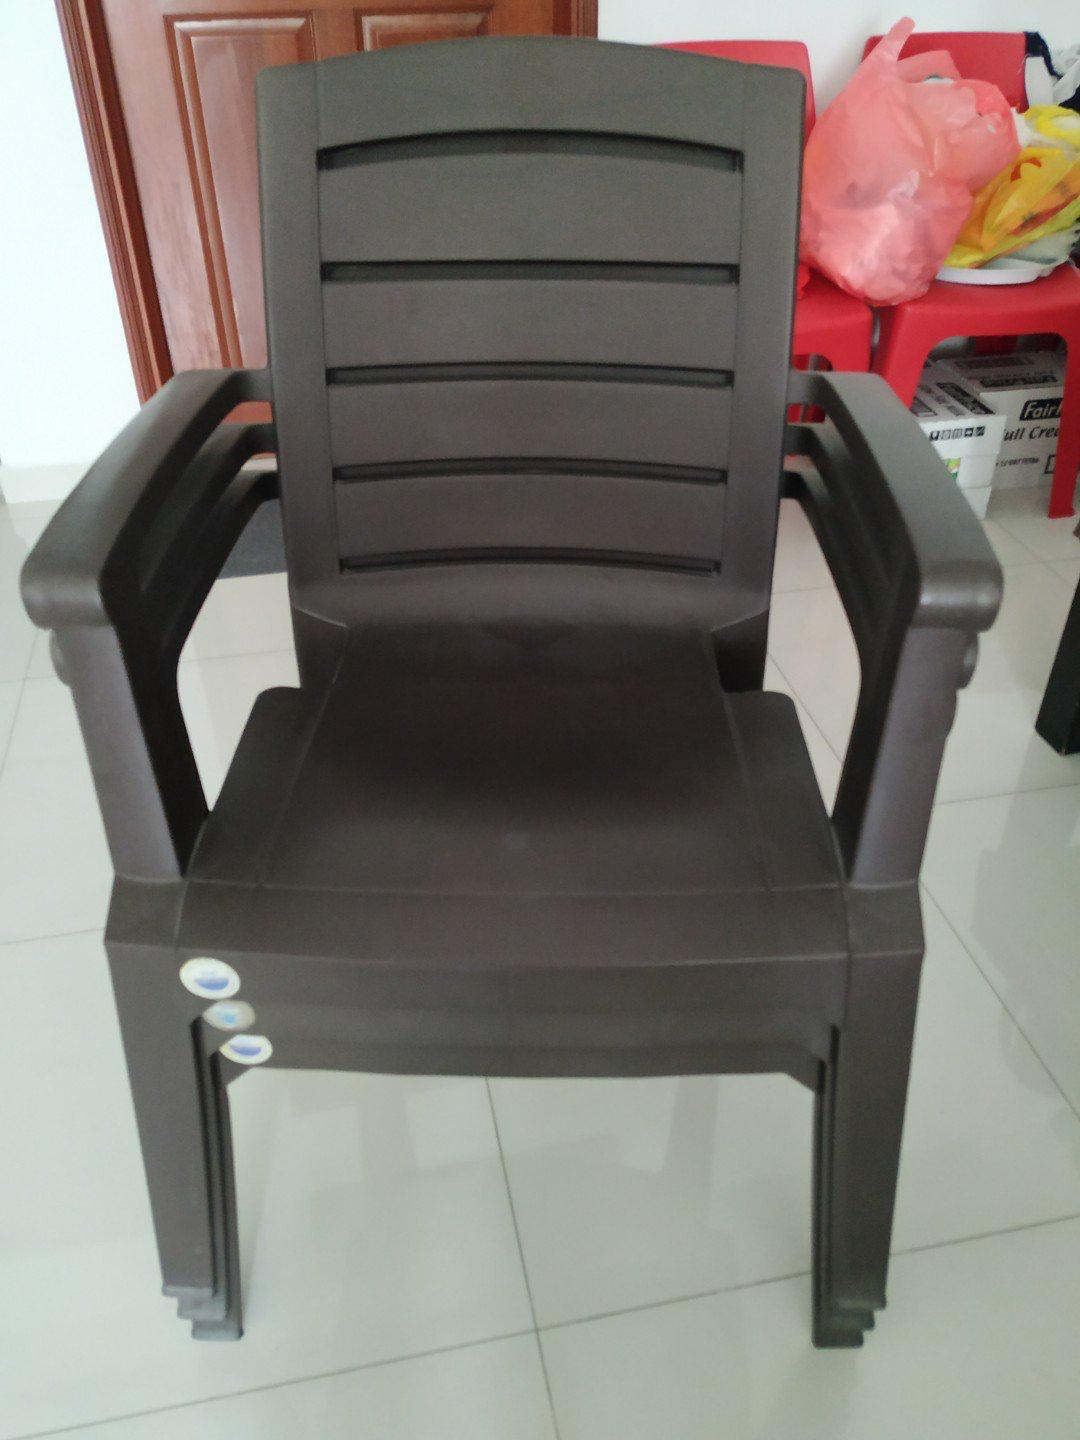 Two Plastic Arm Chair (stackable), Furniture, Tables